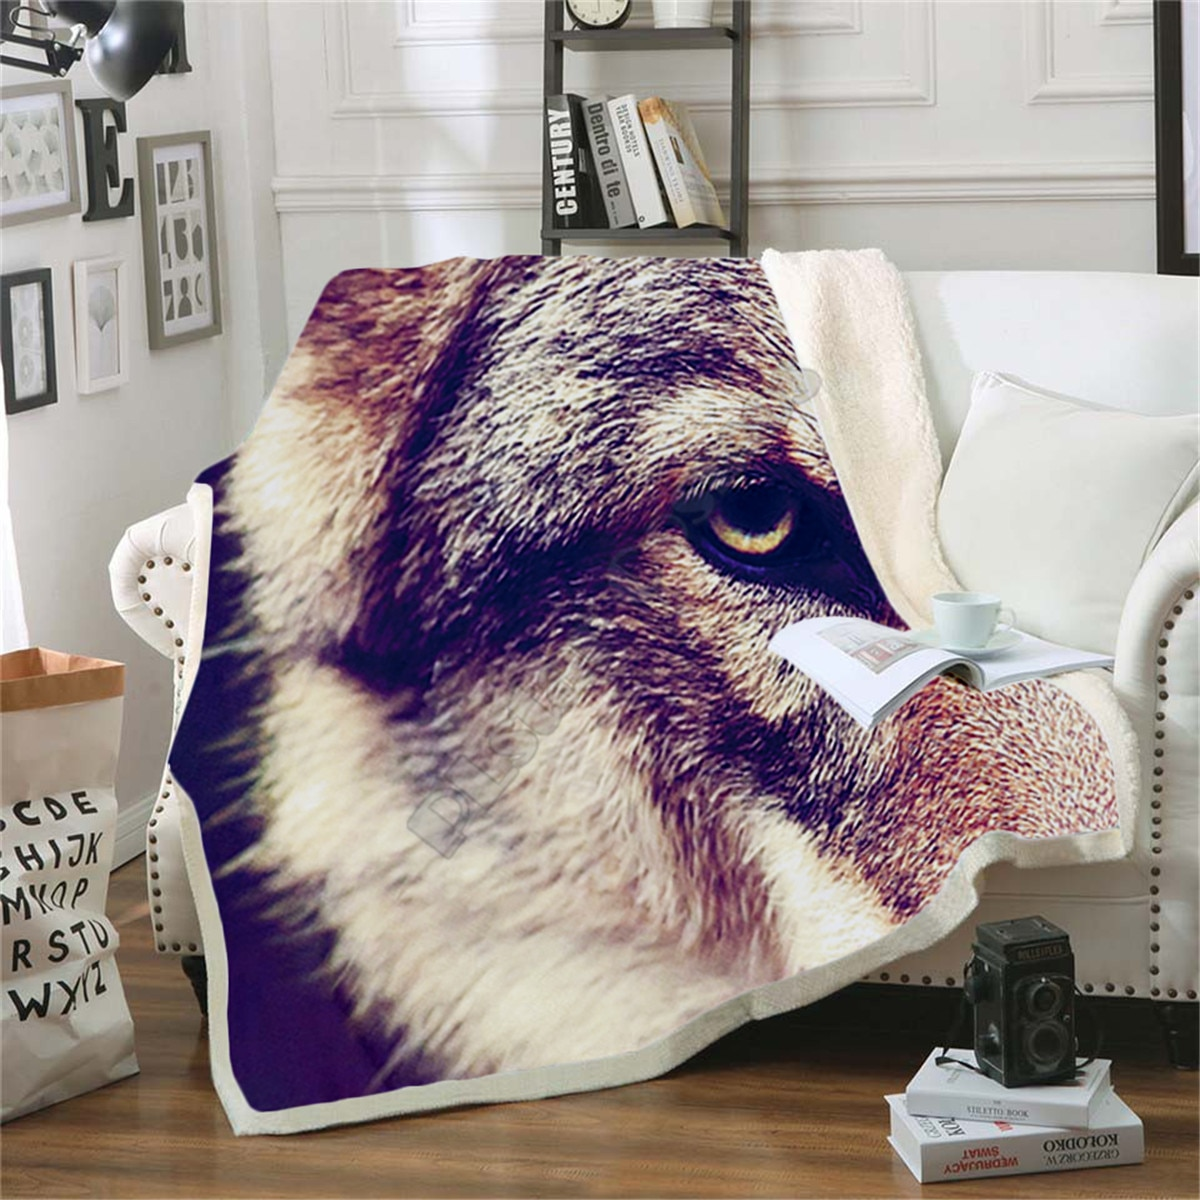 Wolf Fleece Blanket 3D printed Sherpa Blanket on Bed Home Textiles Dreamlike HOME ACCESSORIES 02